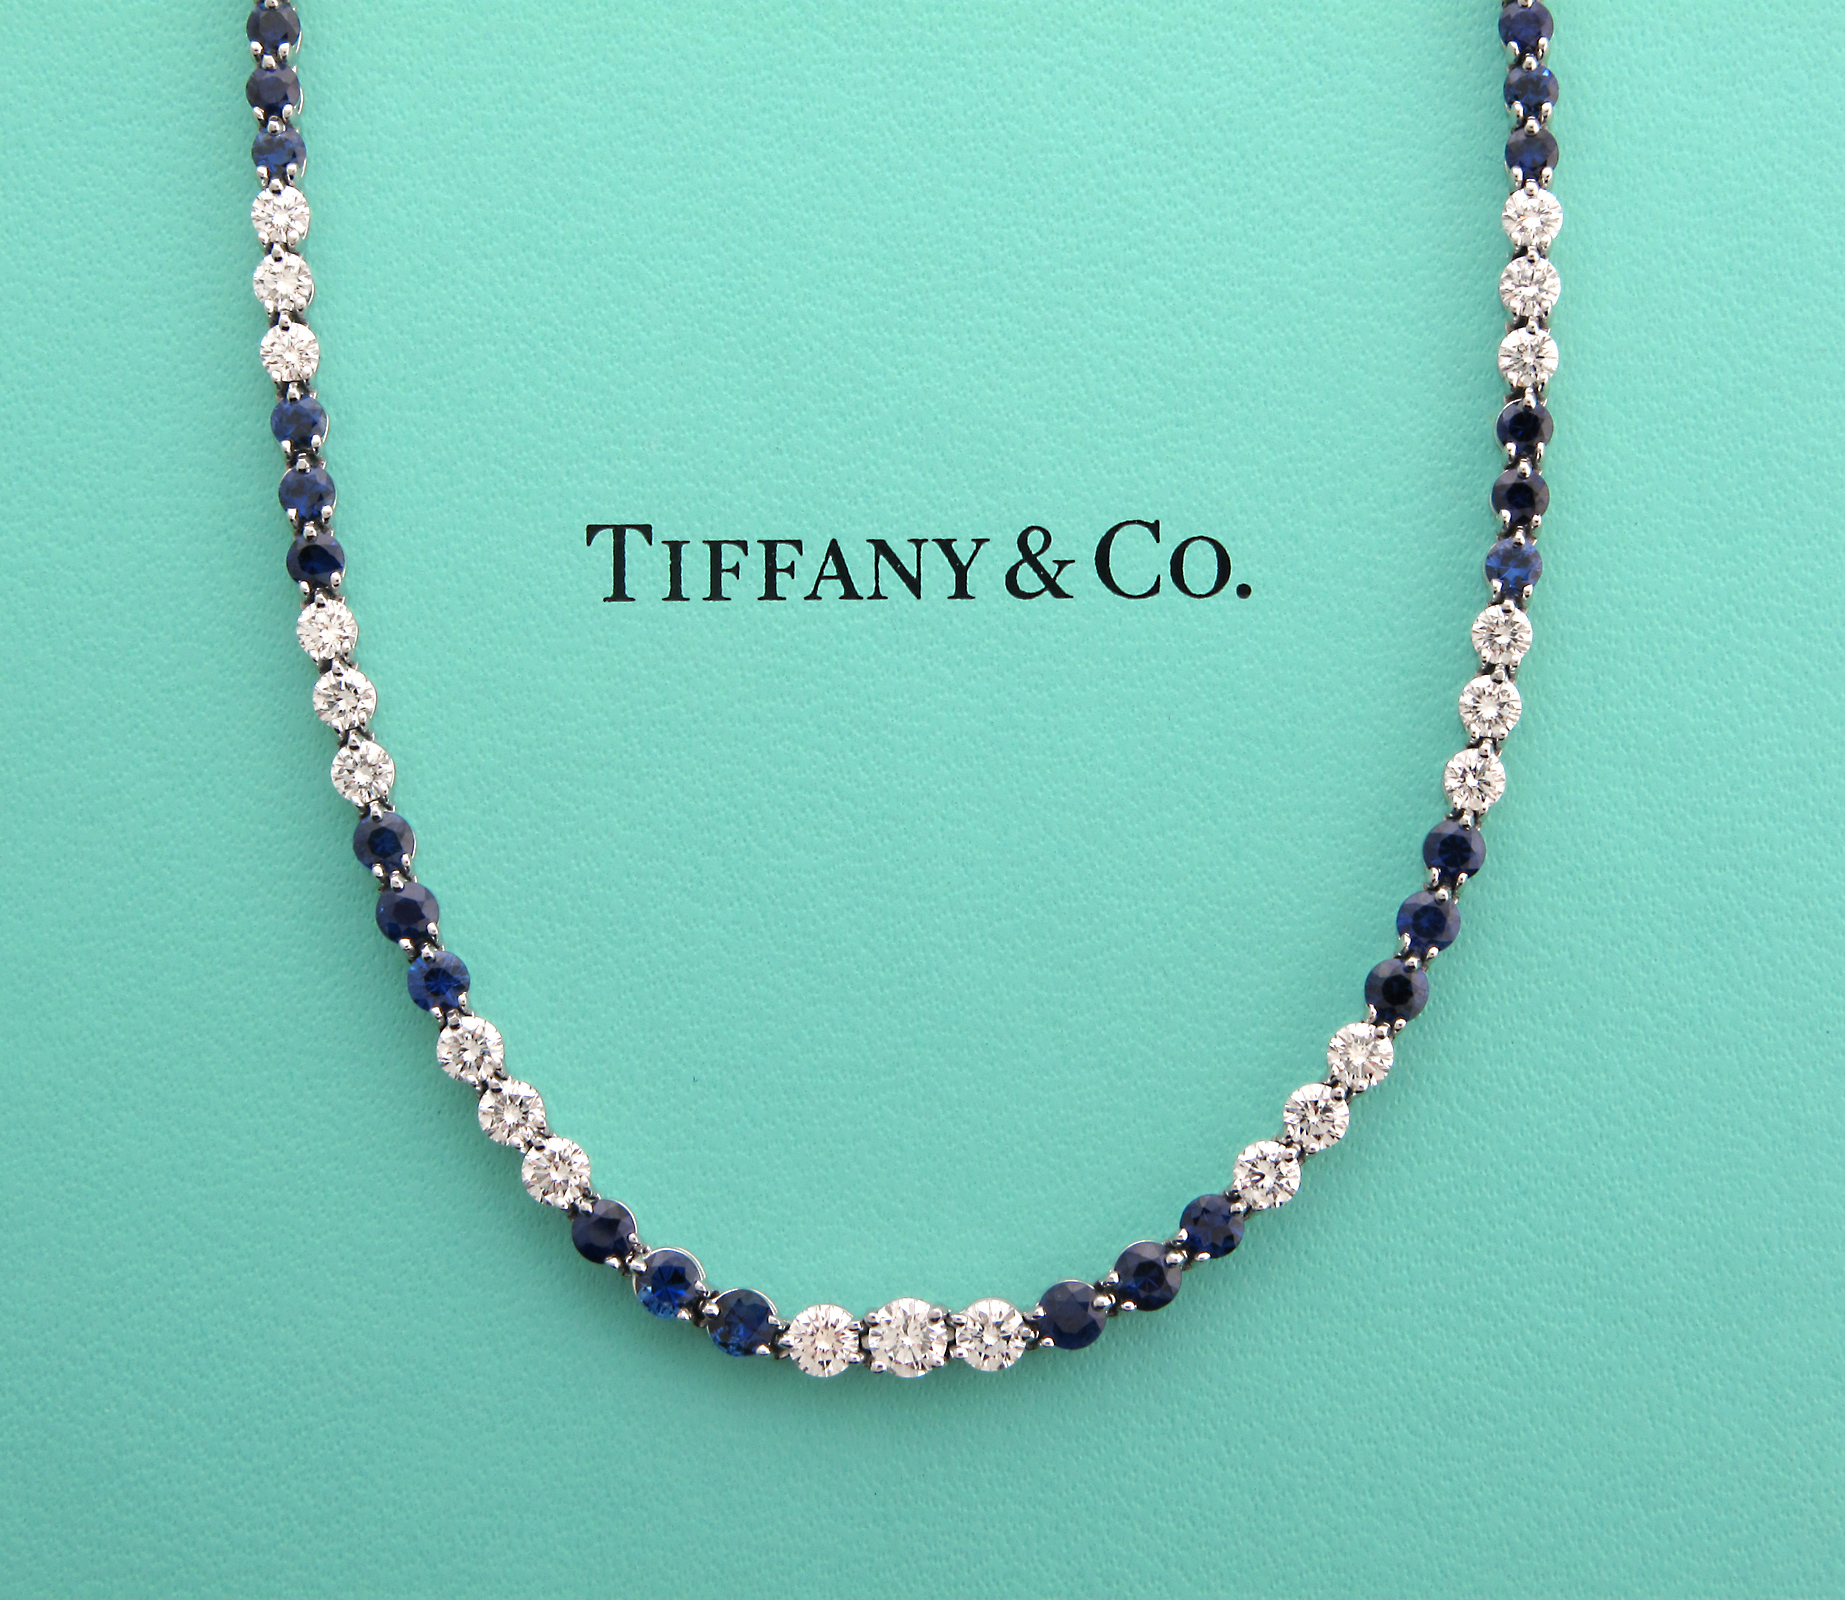 More modest Tiffany amp co jewelry simply